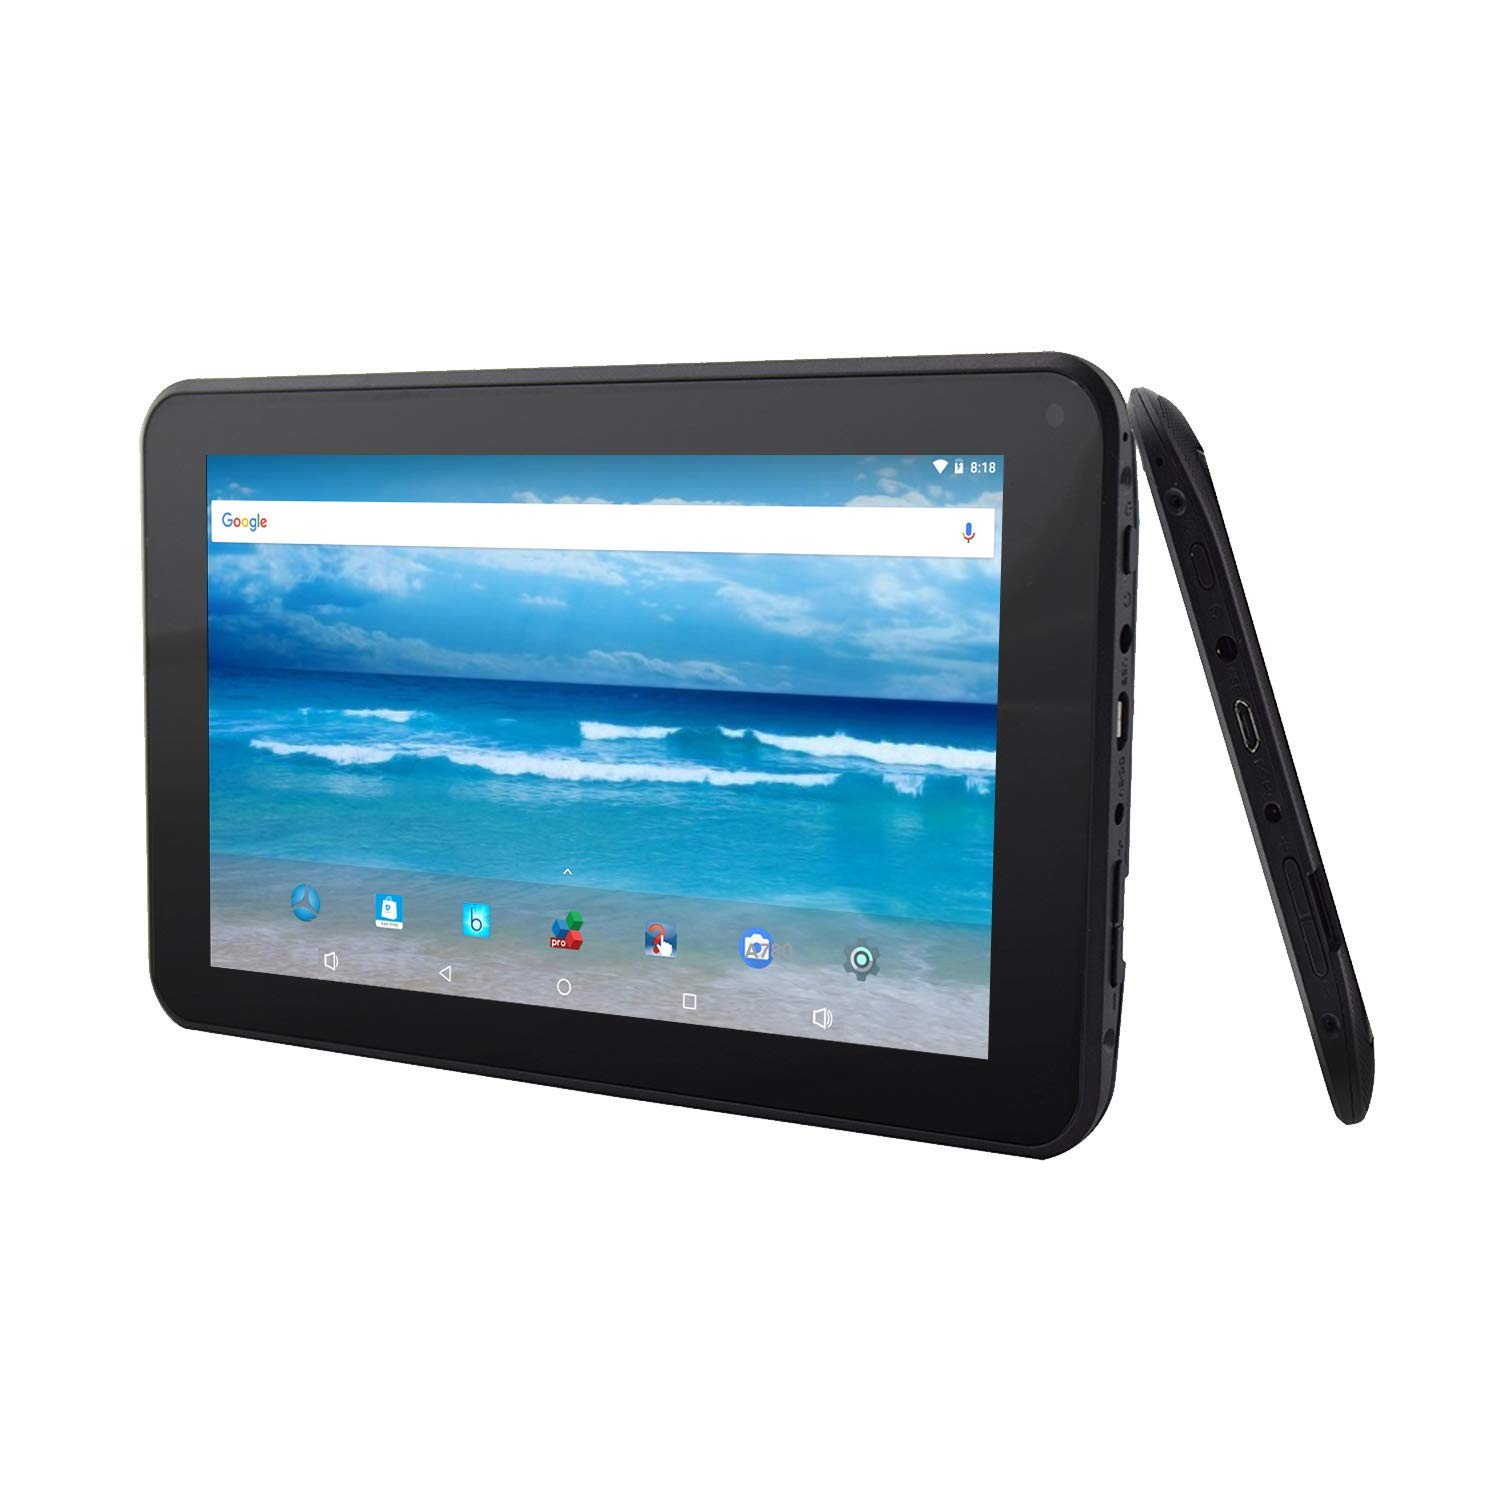 7 Inch Android 8 1 Oreo Google Certified HD Tablet by Azpen 8GB Bluetooth  Google Play Store and Skype Facebook and Instagram (2019 Latest Version)